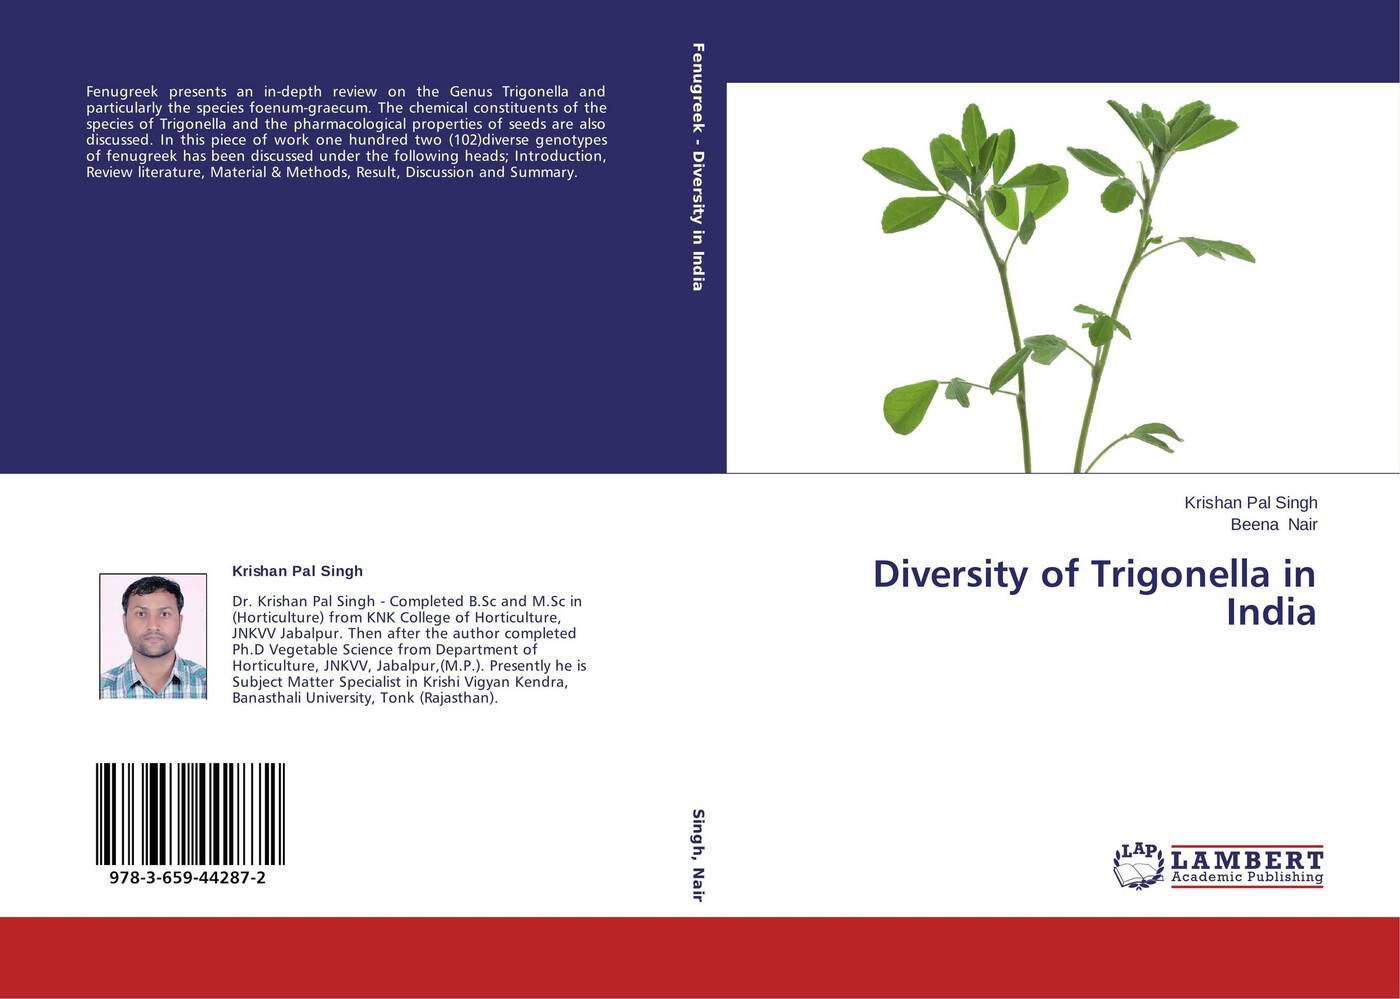 Krishan Pal Singh and Beena Nair Diversity of Trigonella in India mohamed aymen elouaer maher souguir and cherif hannachi effect of nacl priming on germination behavior of fenugreek